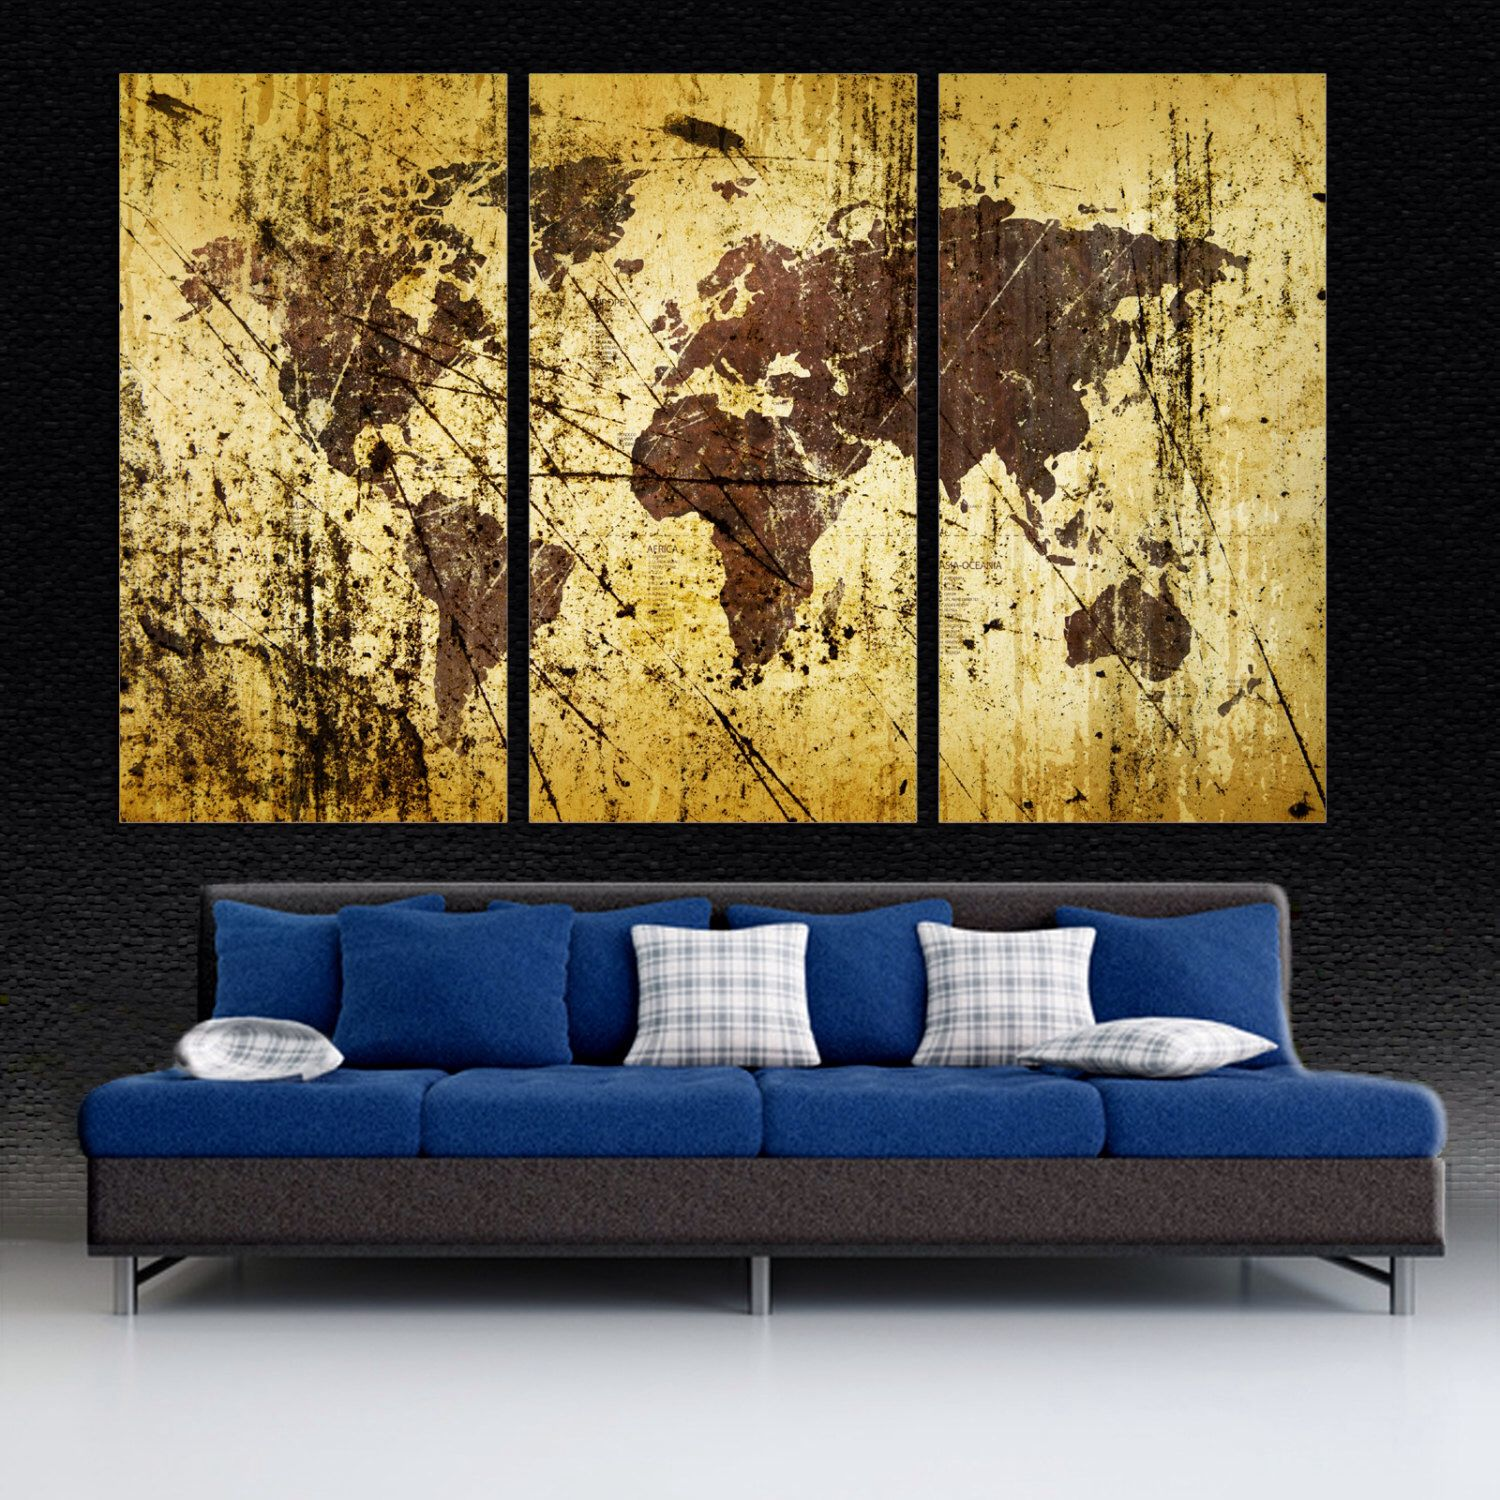 Abstract buff kobicha world map canvas print wall art 3 panel split 3 panel split abstract world map canvas print deep frames triptych buff kobicha art for homeoffice wall decor interior design gumiabroncs Image collections